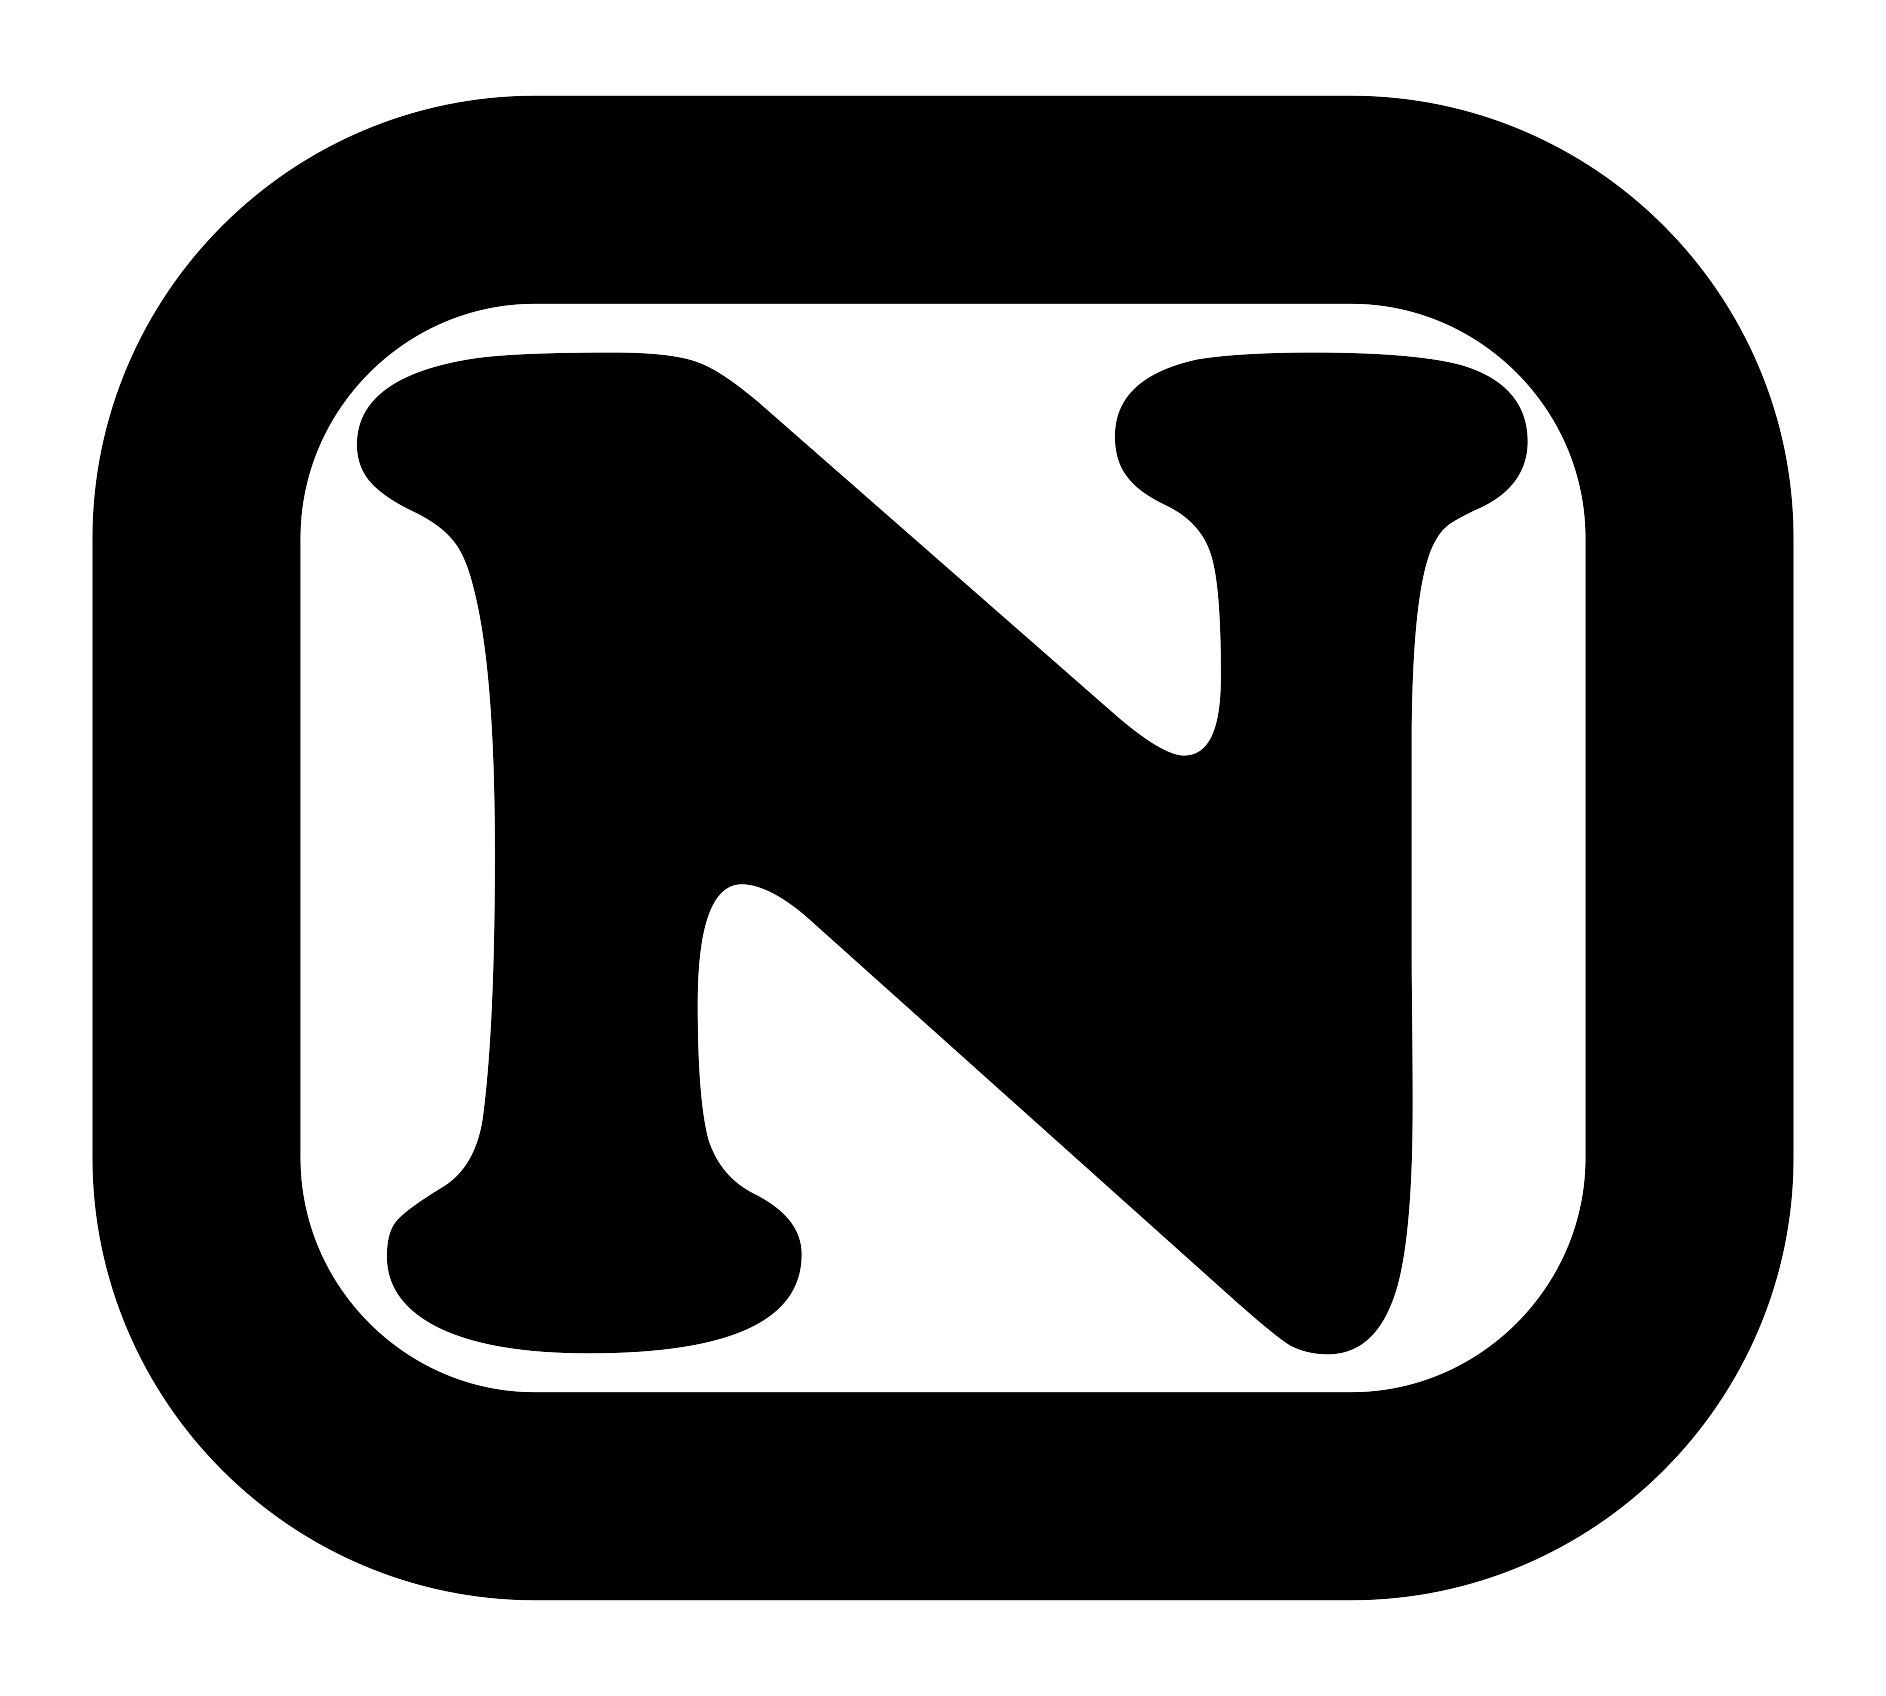 Made-in-California-manufacturer-Nut-Industries-New-Logo-2014-03-00.png